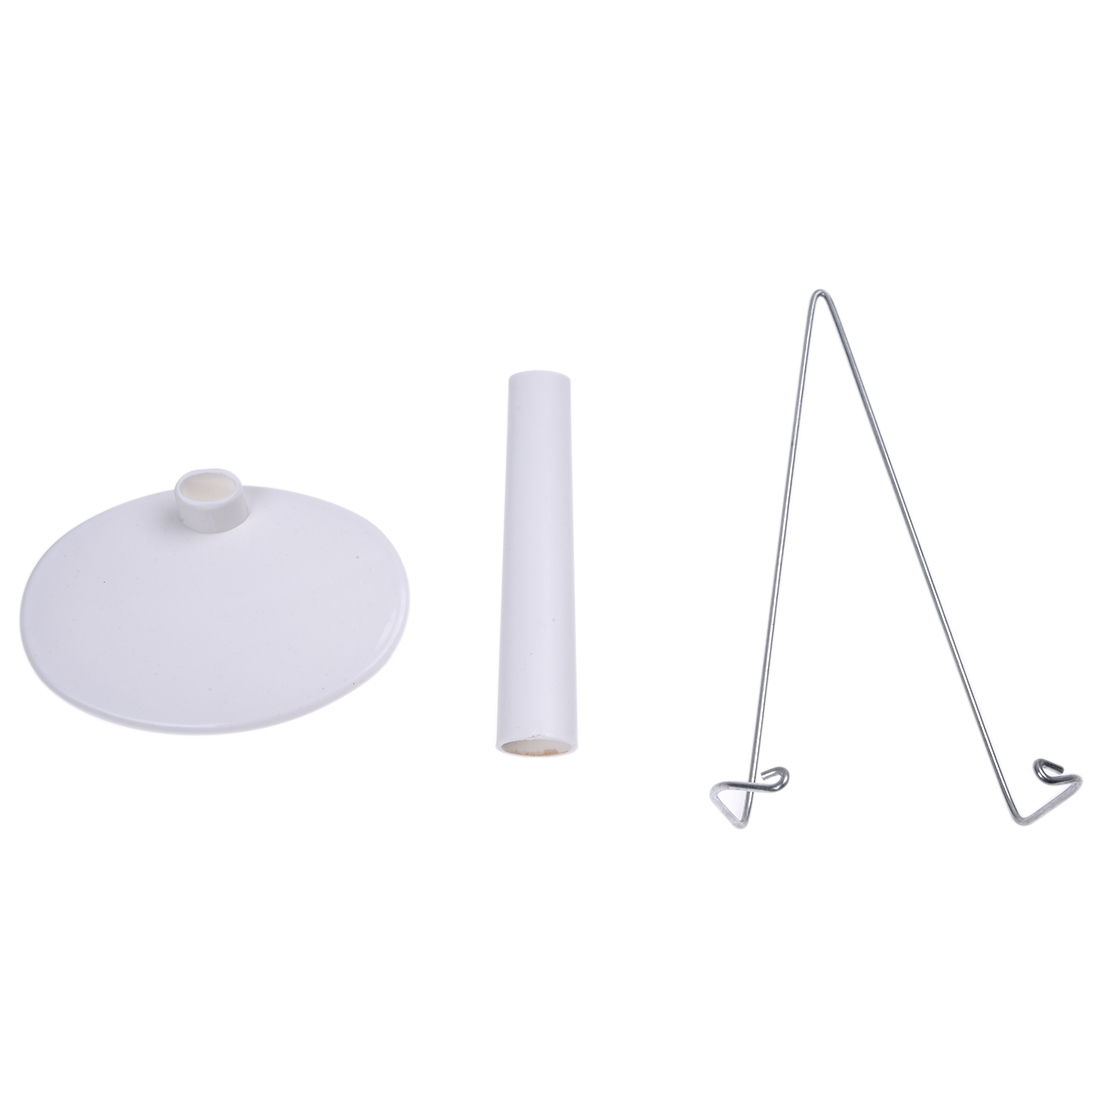 Support stand of Doll White Adjustable 5.9 to 8.3 inches.